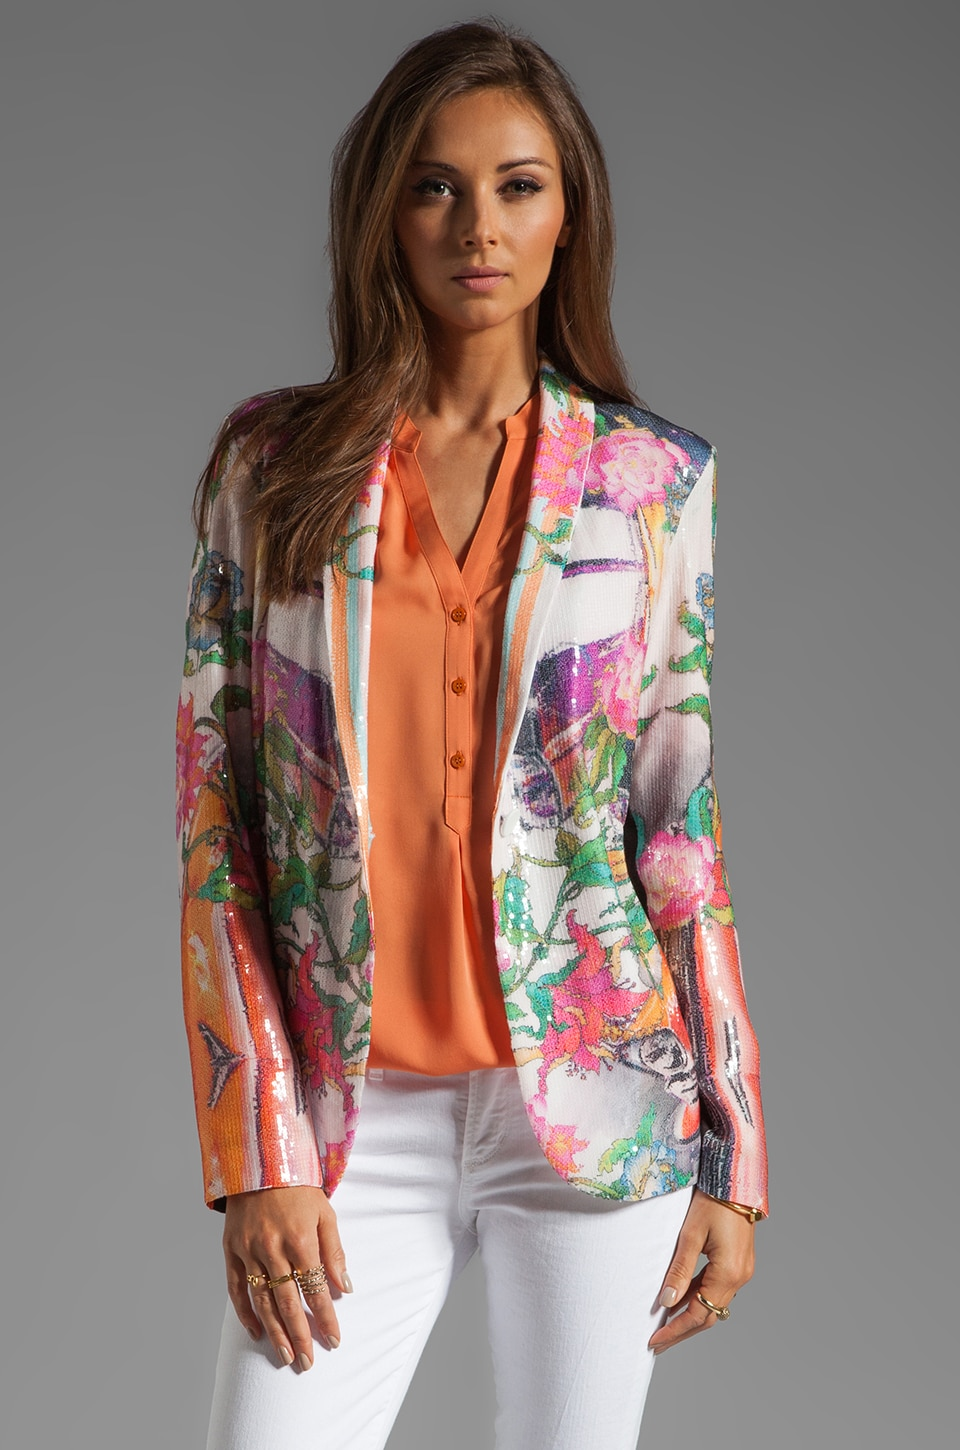 Clover Canyon Hydraulics Sequins Jacket in Multi